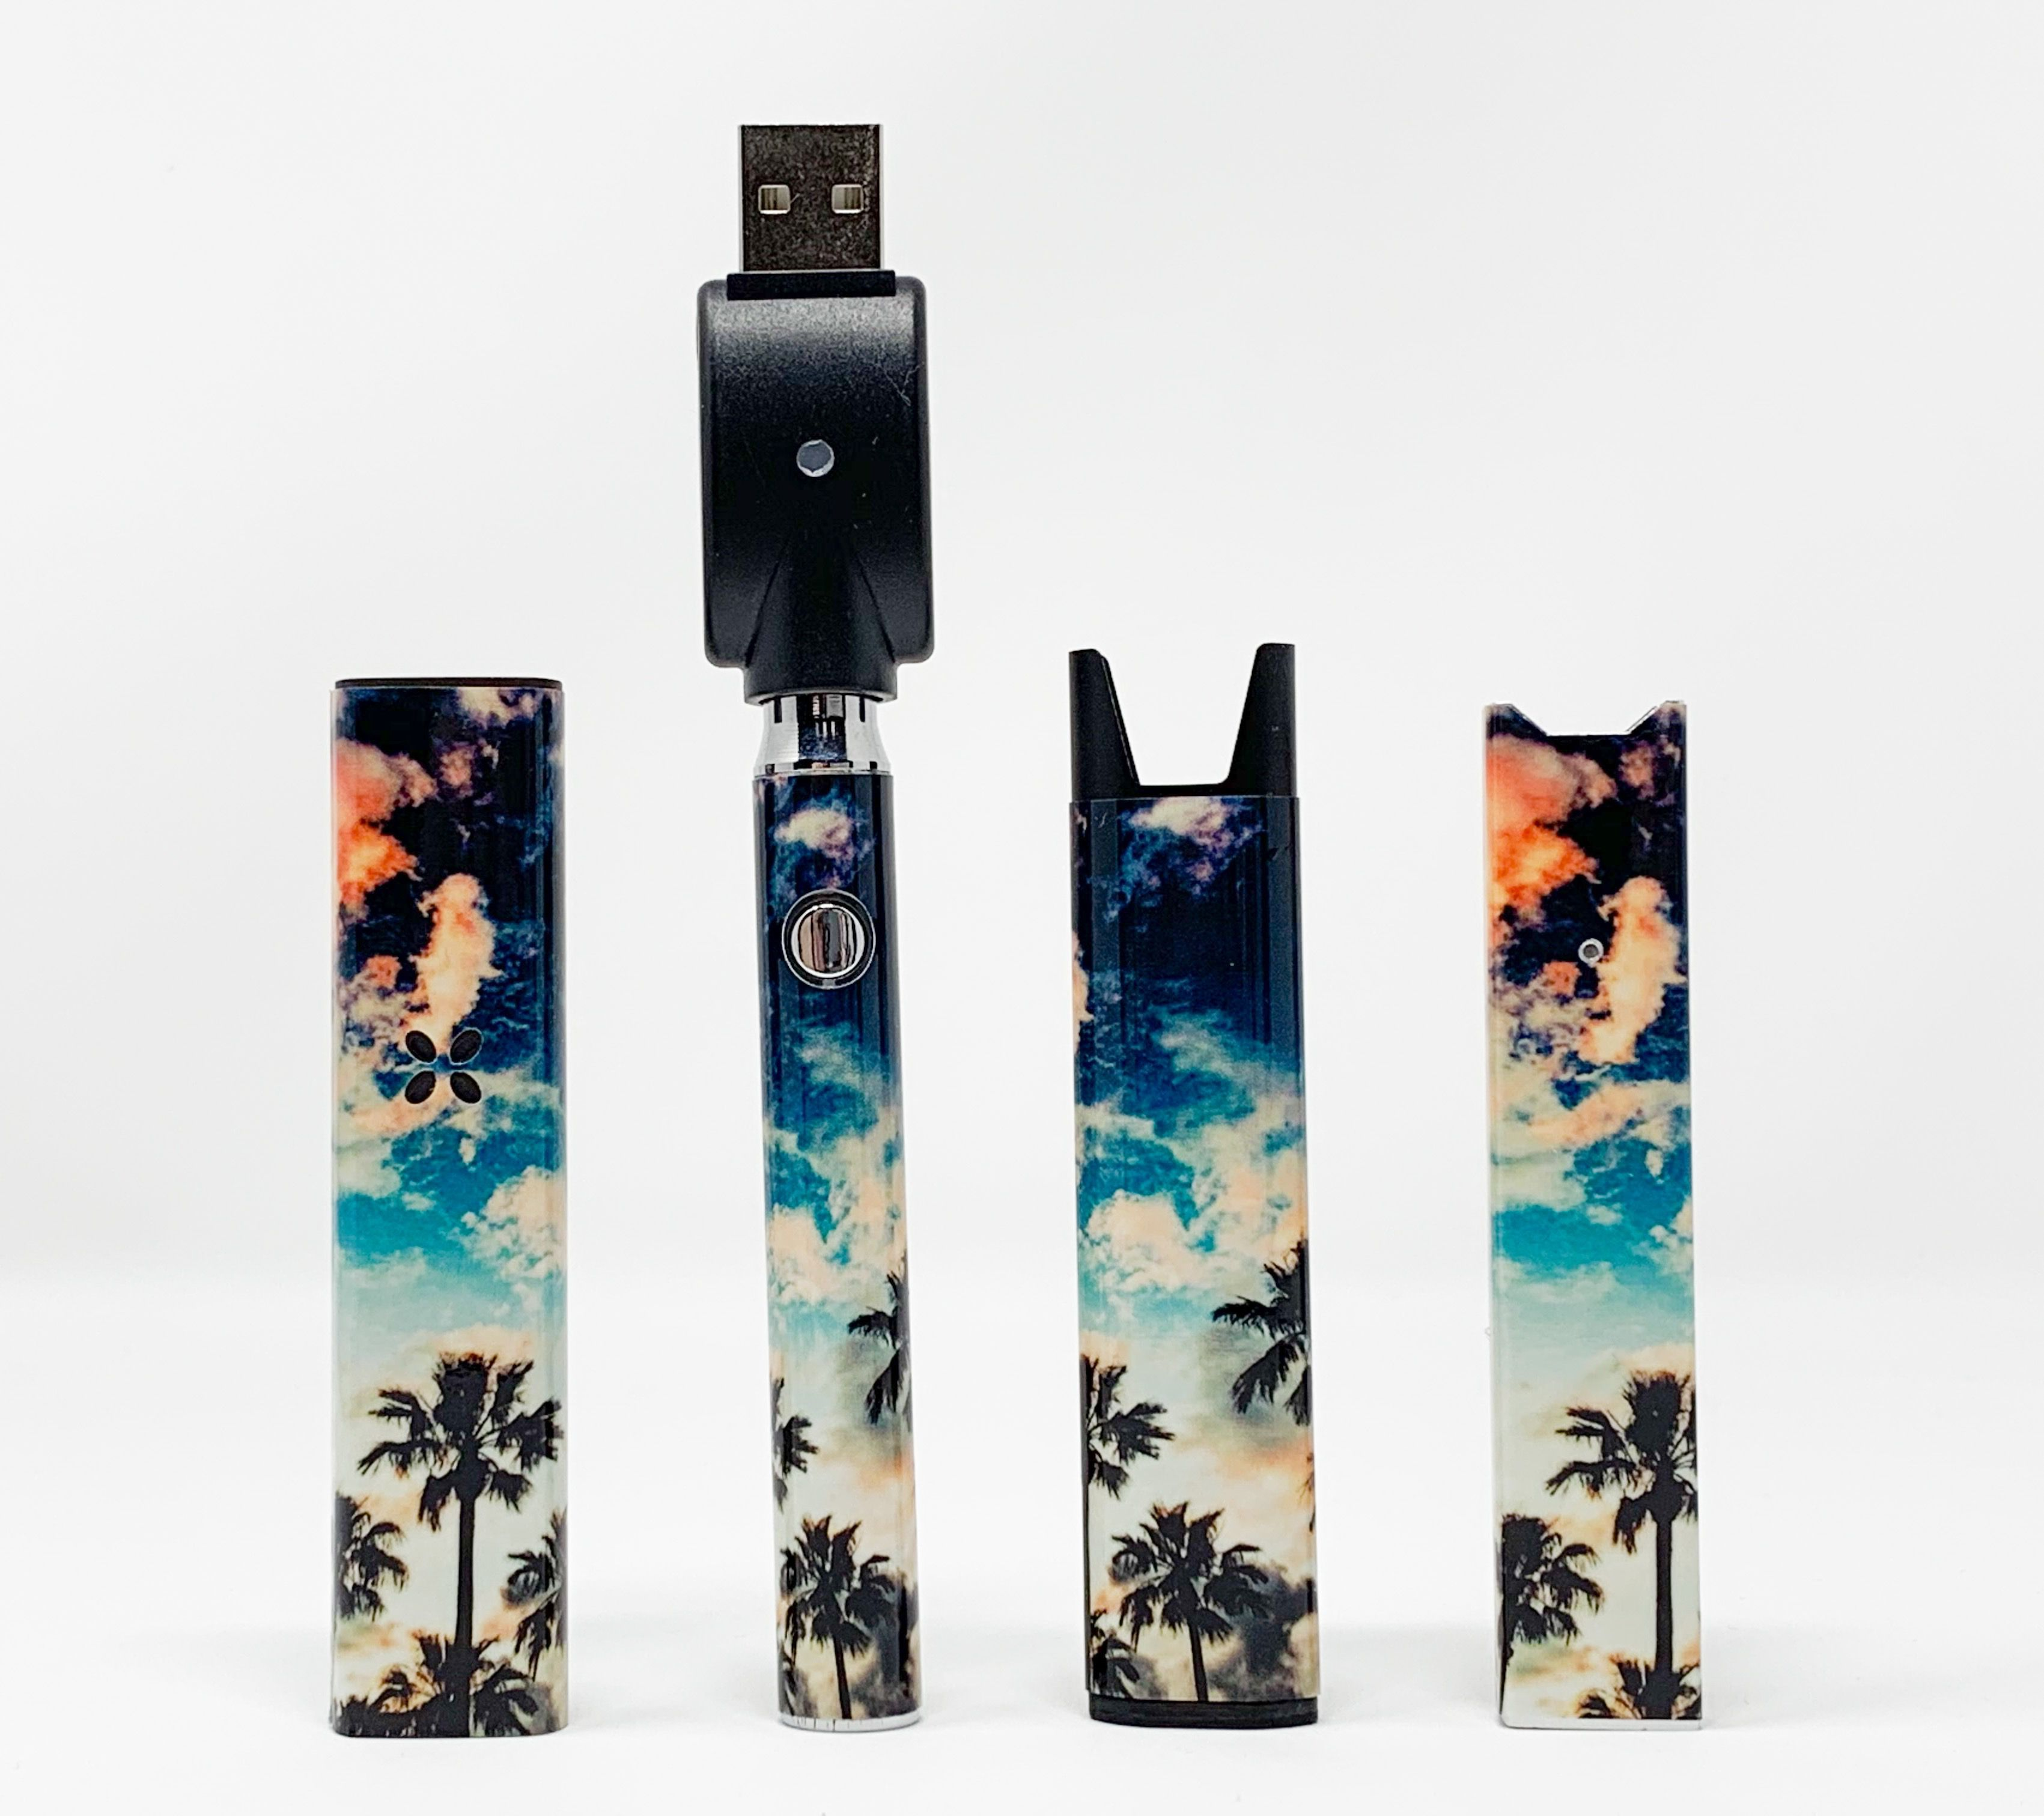 Custom Vape Pens! Shop now orders include battery and charger